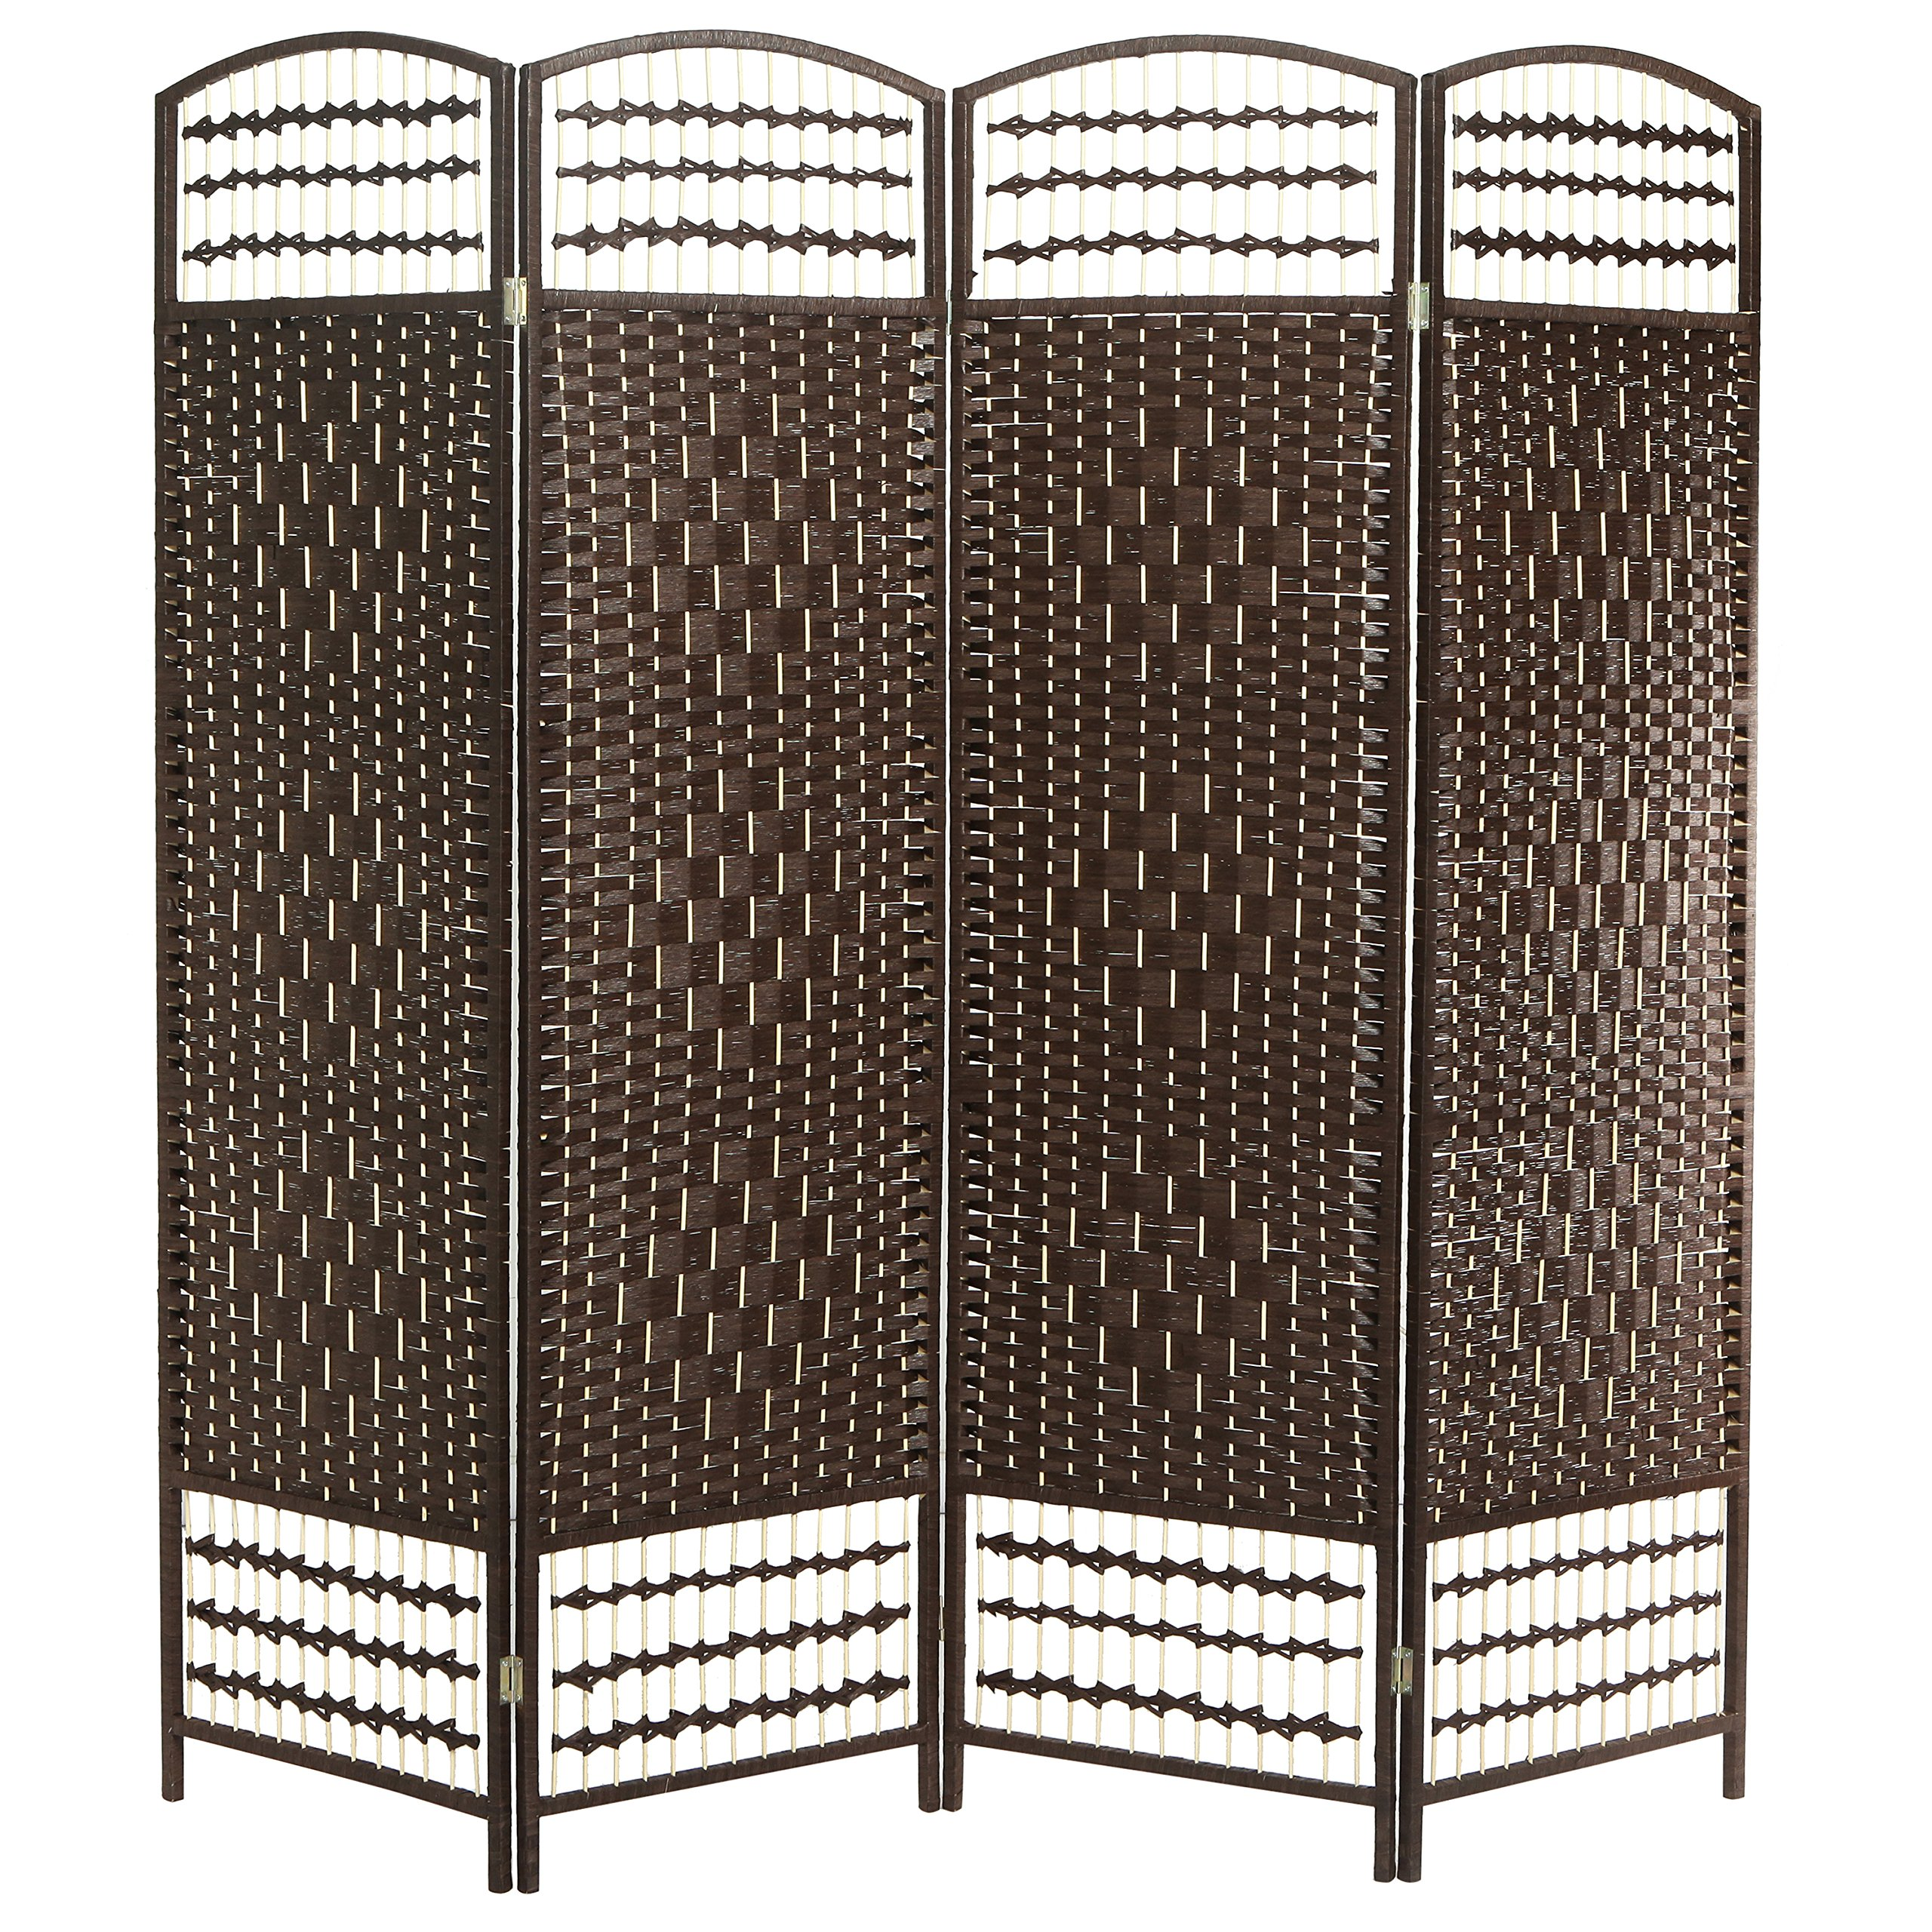 MyGift 4 Panel Woven Design Room Divider, Wood Frame Privacy Screen, Brown by MyGift